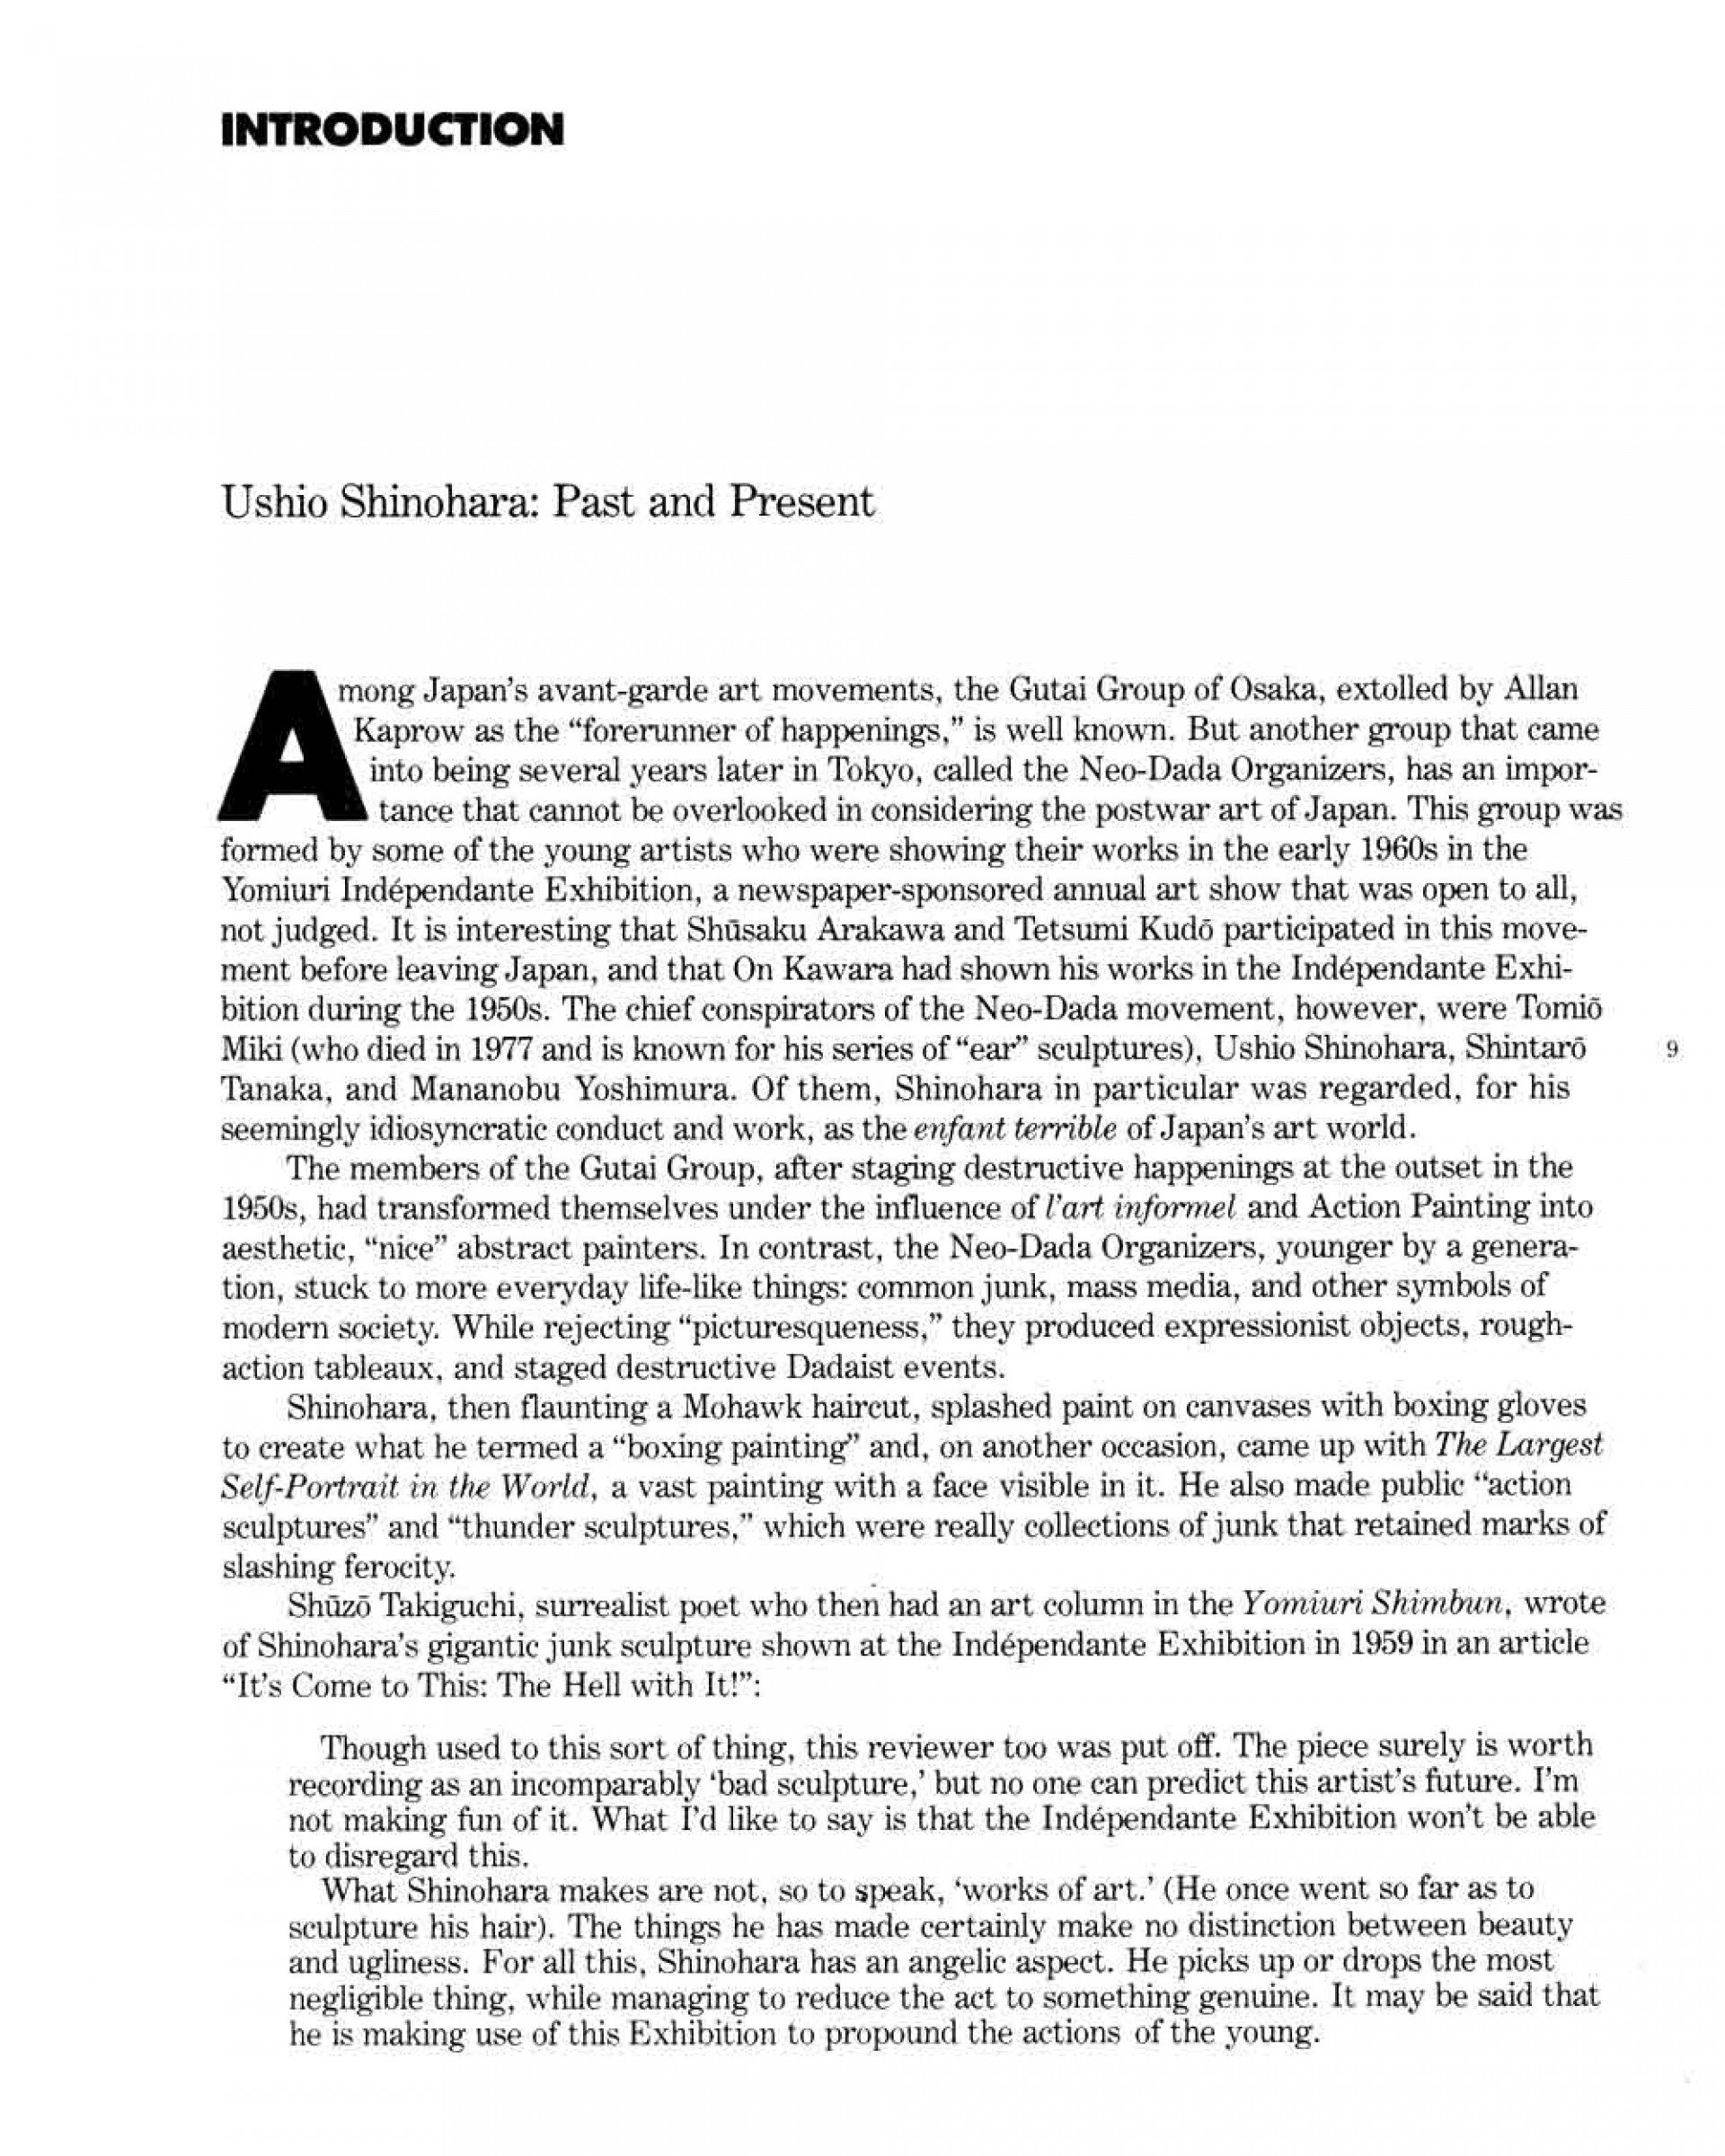 007 Ushio Shinohara Past And Present Essay Pg 1 Example How To Cite Fearsome Essays From A Book Mla An Within Apa Research Paper 1920